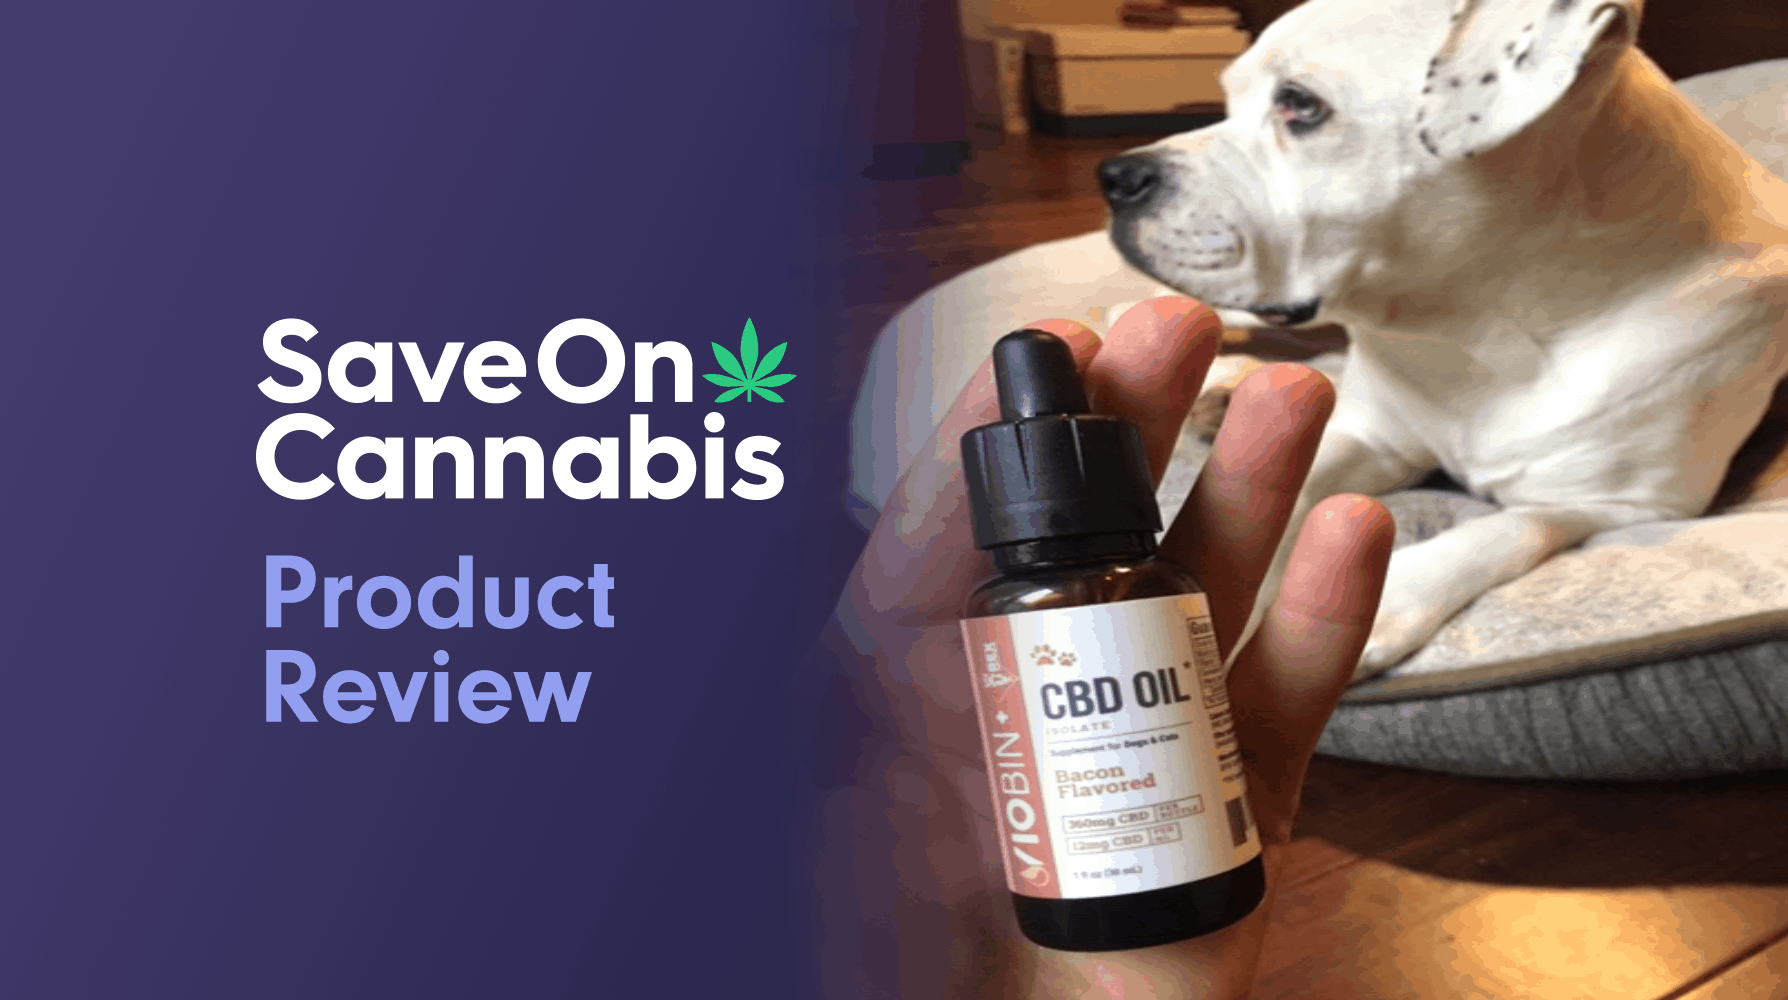 Viobin Pet CBD Oil Bacon Flavored Save On Cannabis Review Website